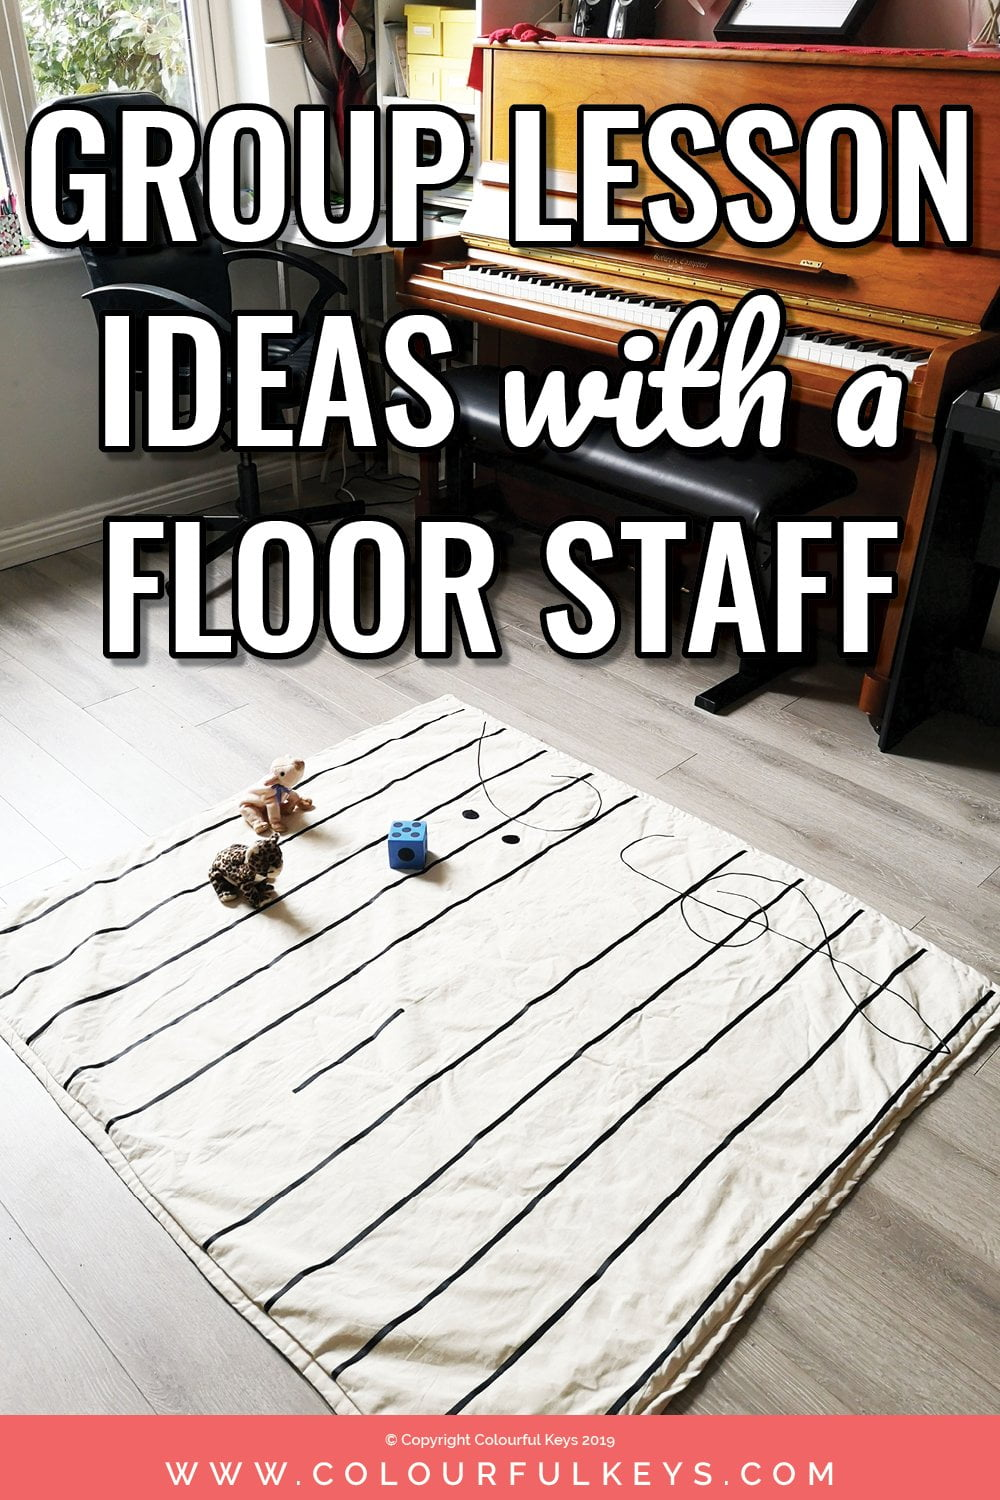 ideas for using a floor staff in group lessons and how to make a floor staff